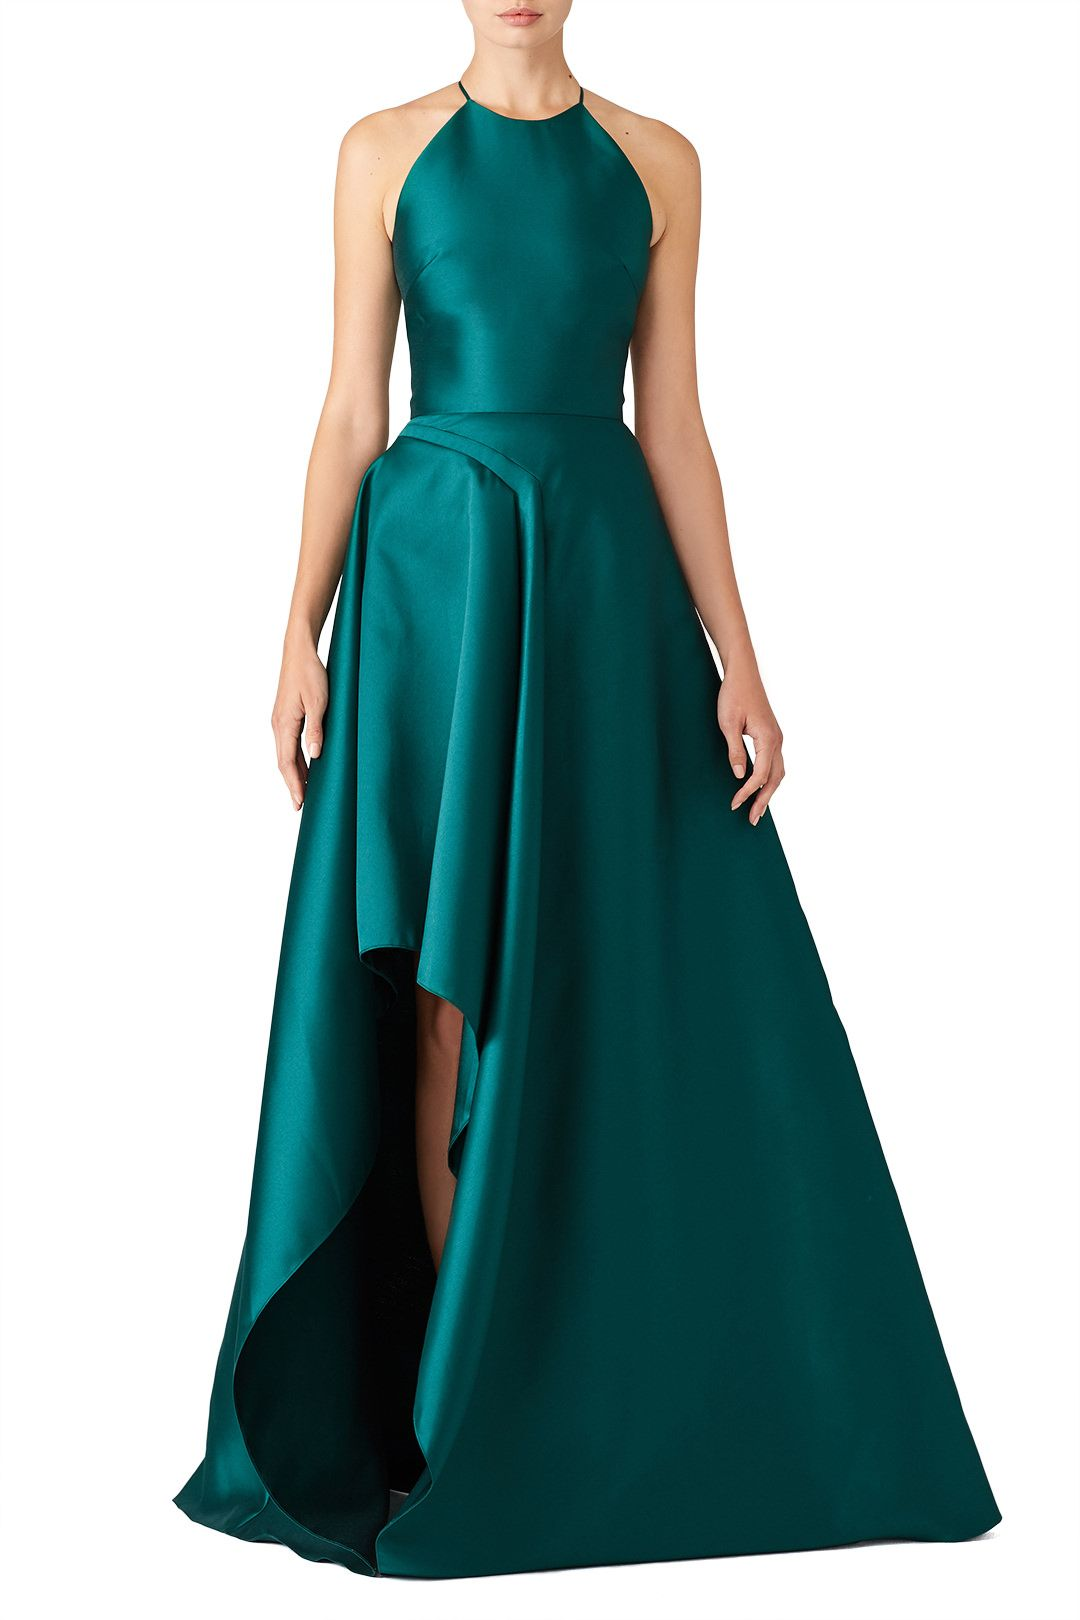 d018d77435 Rent Teal Sculptural Gown by Badgley Mischka for $100 only at Rent ...